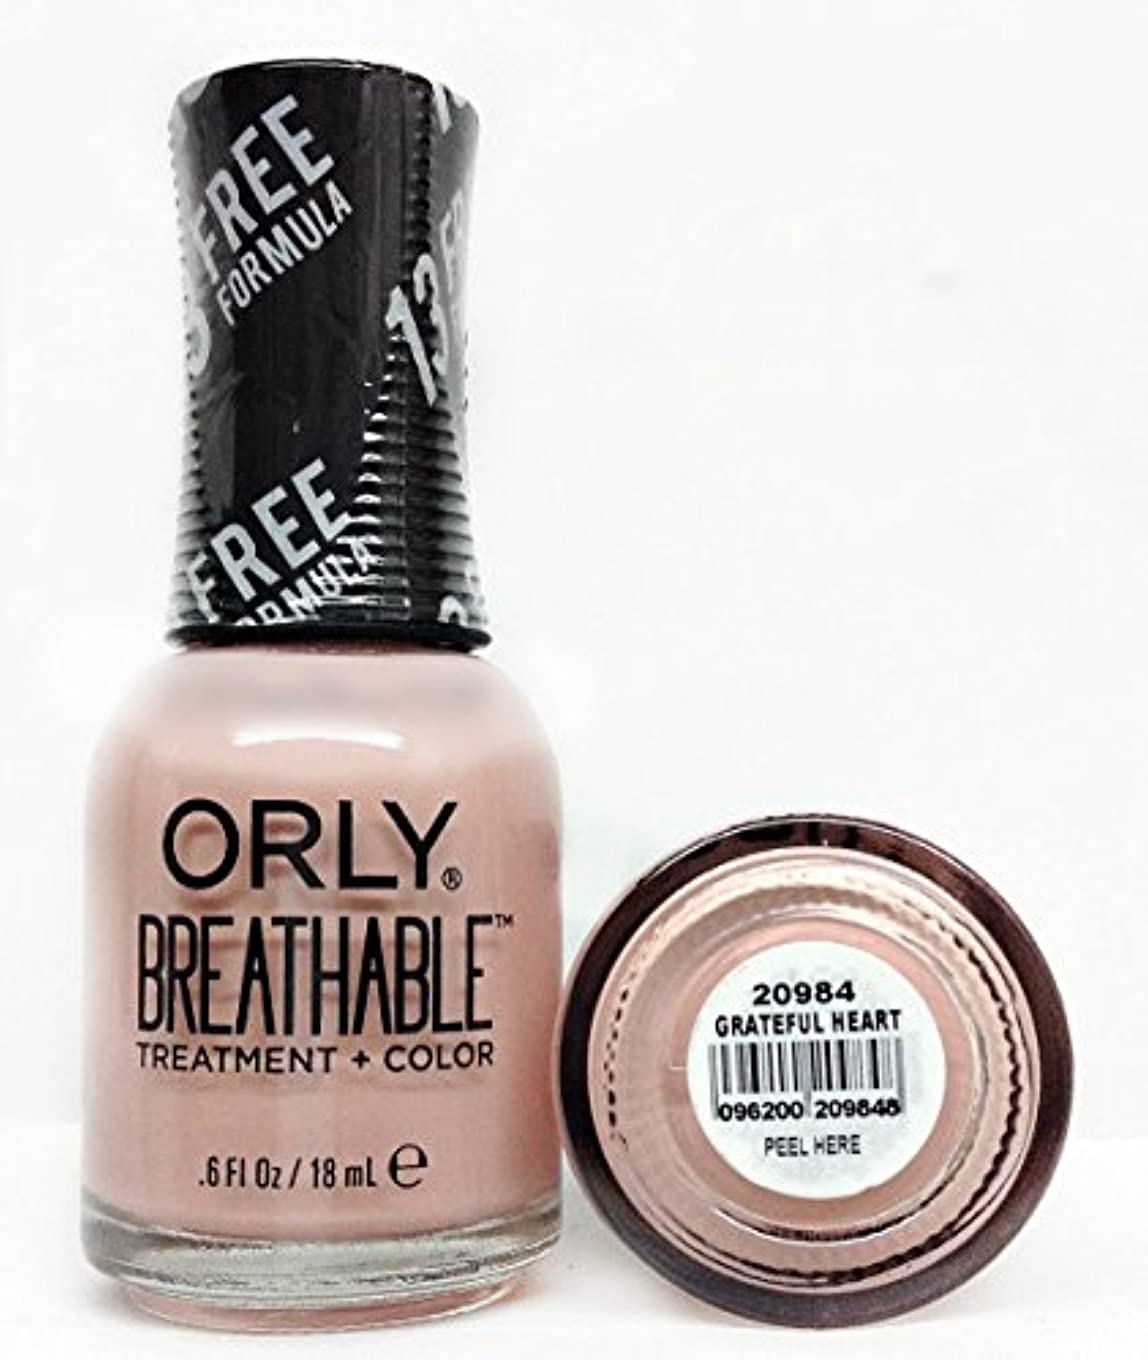 製作描く思慮深いOrly Breathable Nail Lacquer - Treatment + Color - Grateful Heart - 0.6 oz / 18 mL